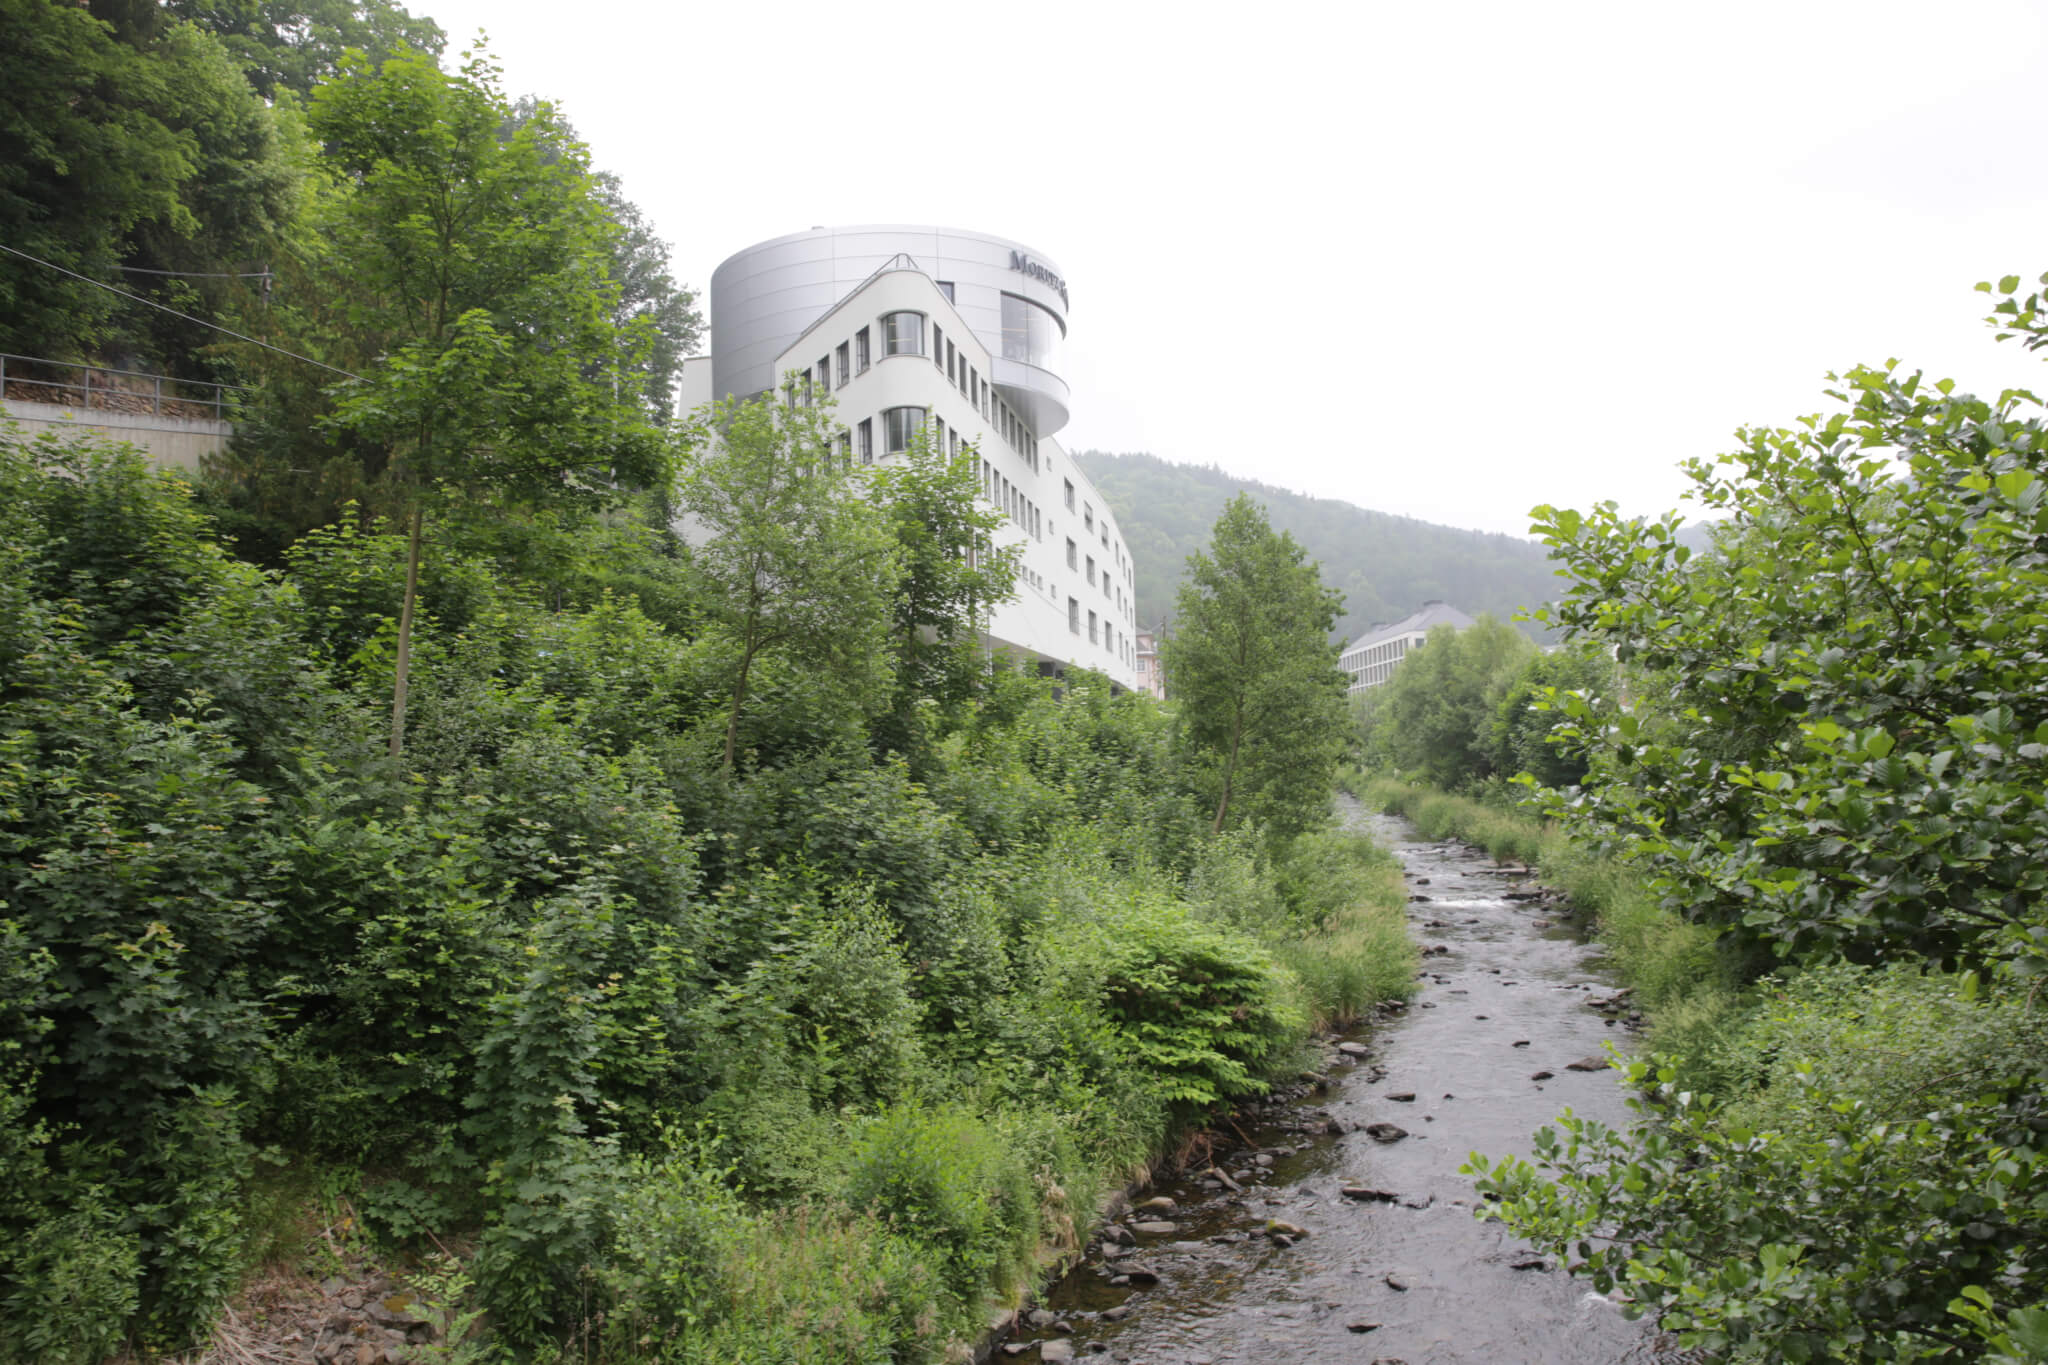 Moritz Grossman manufactory, overlooking the Moritz Grossman brook running through Glashütte